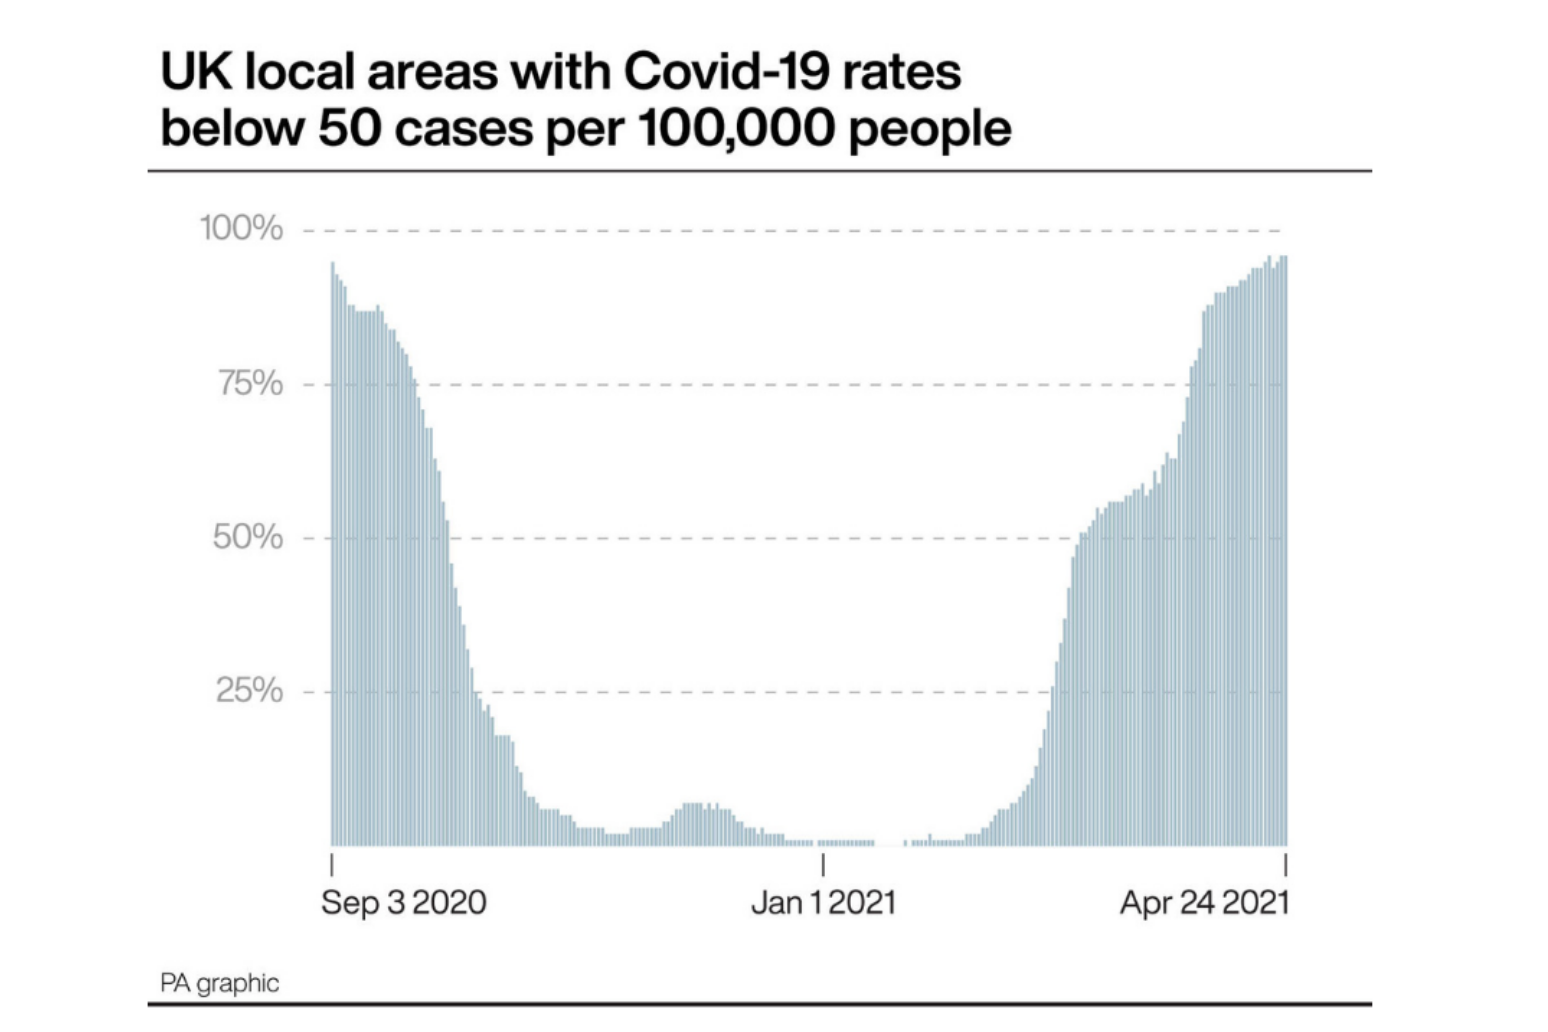 Covid-19 rates drop below 50 per 100,000 in 19 out of 20 local areas